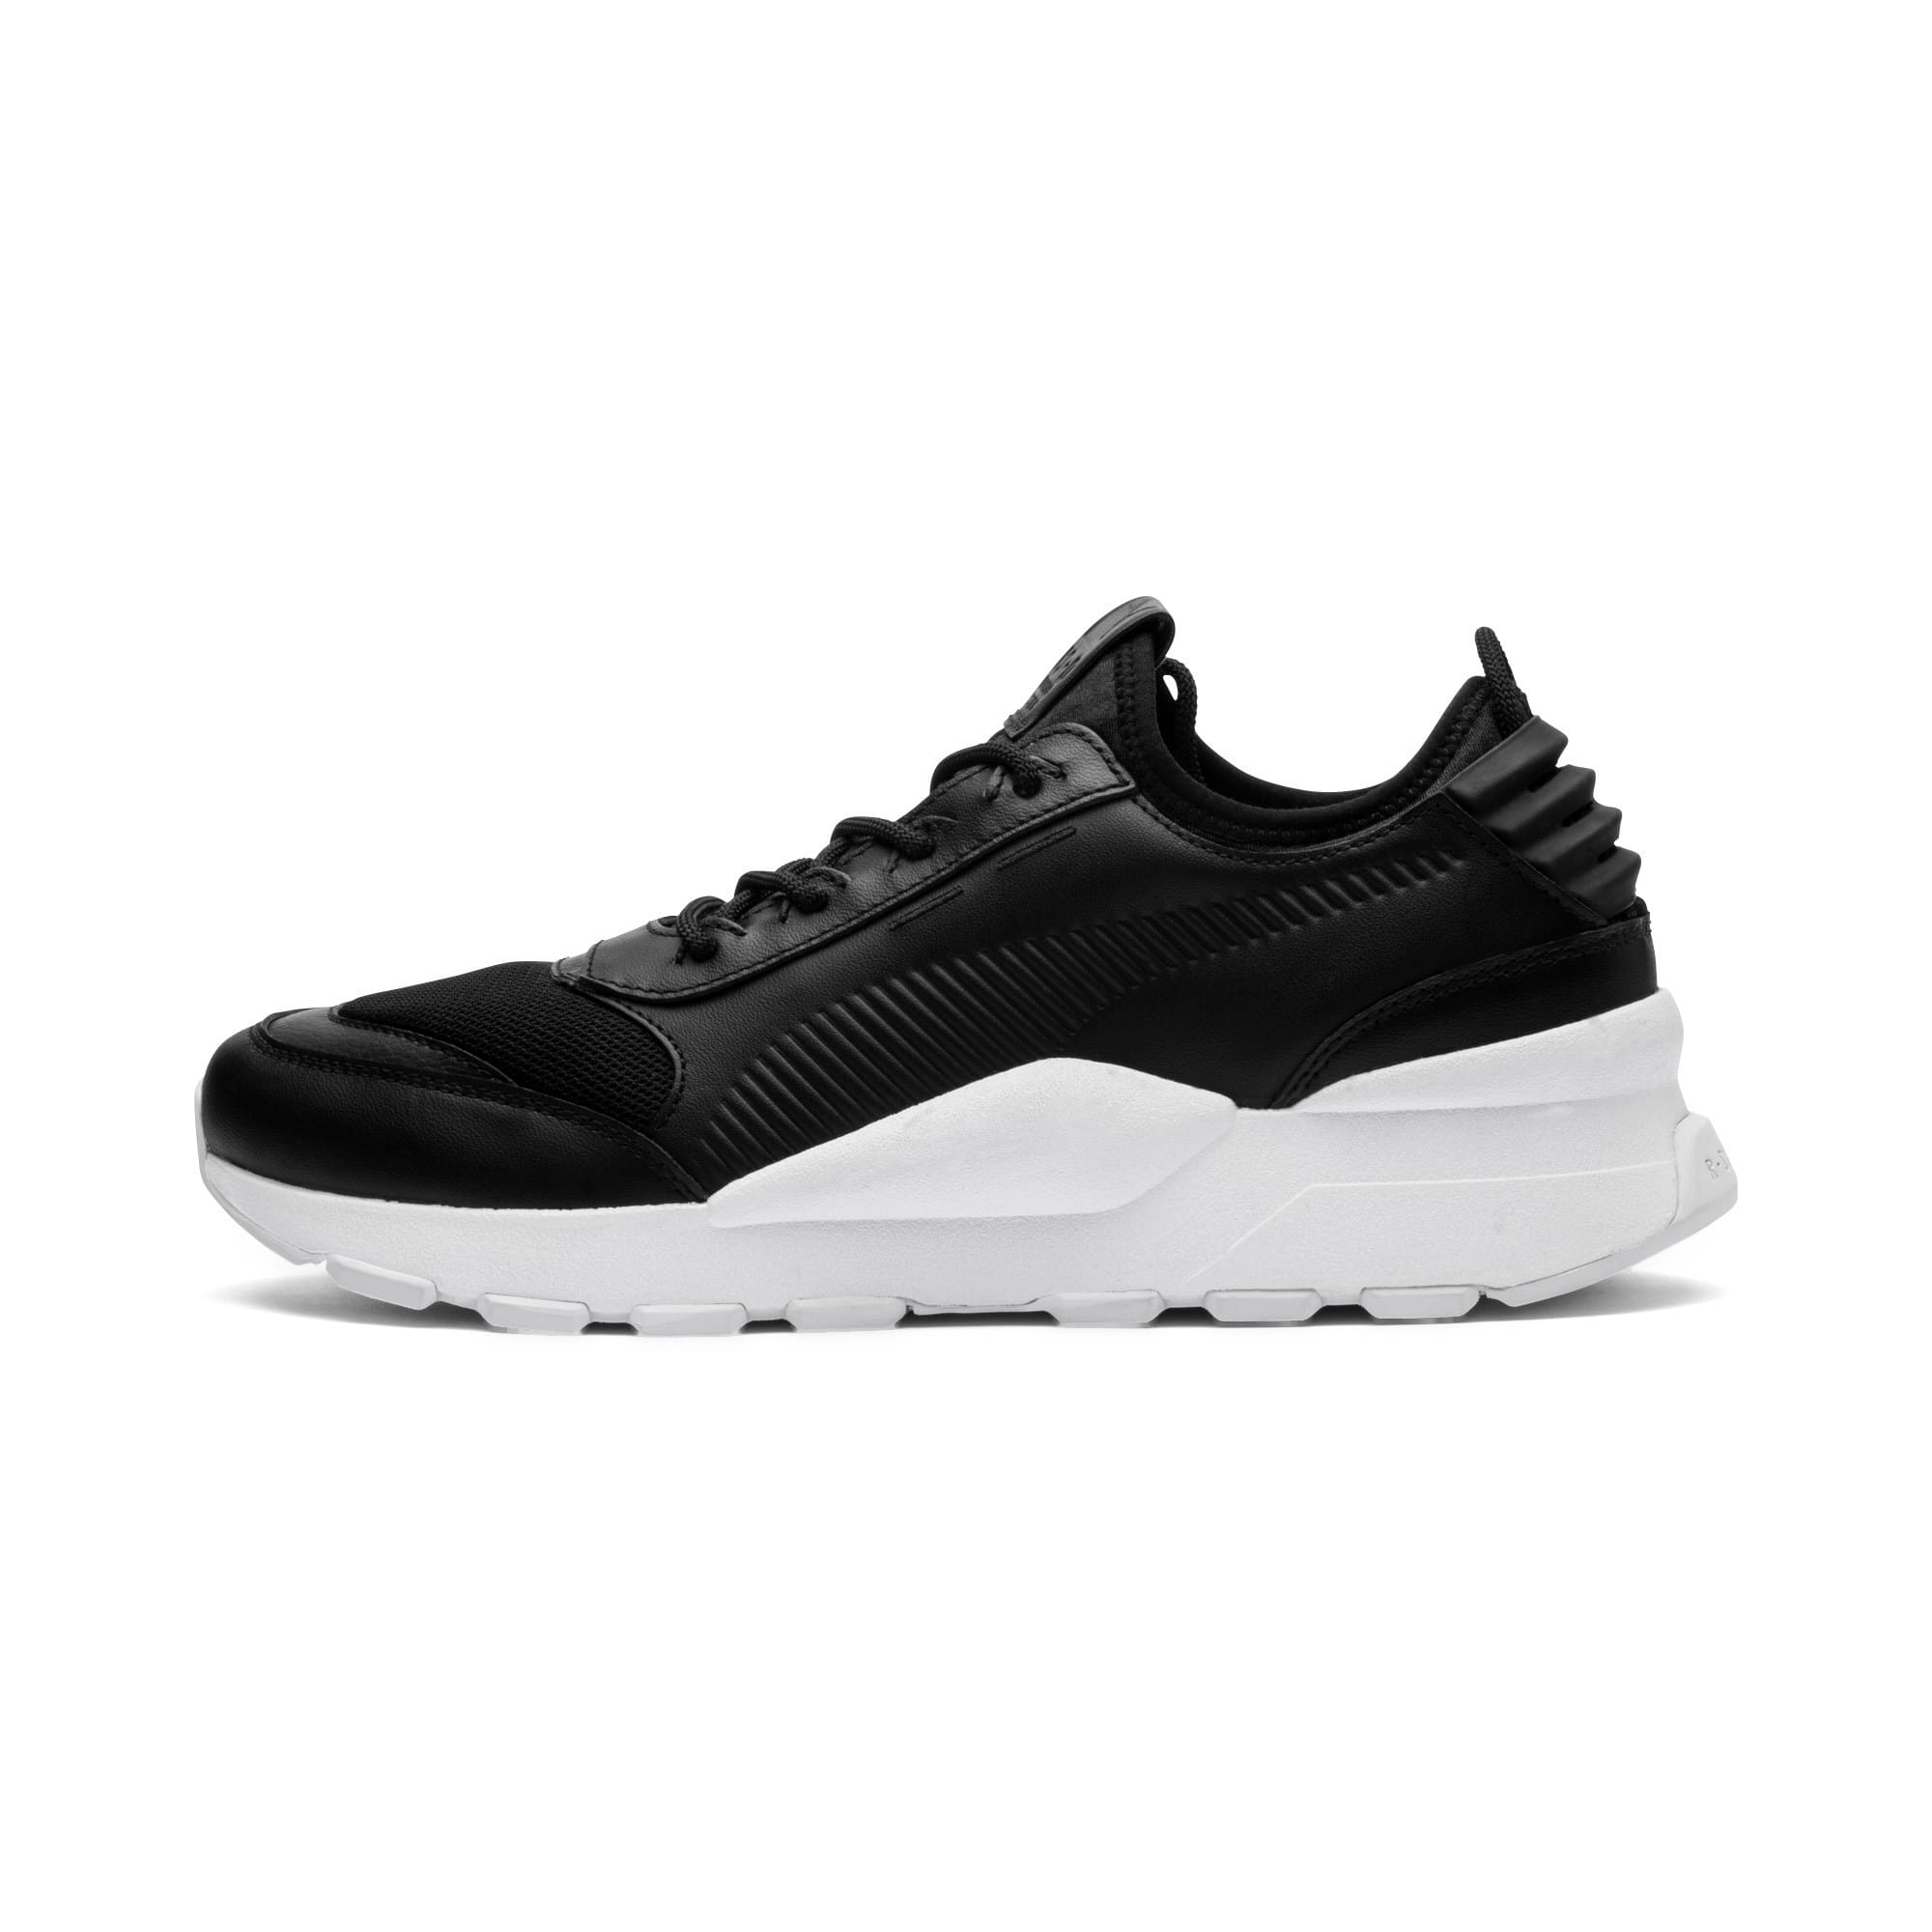 Evolution RS-0 SOUND Trainers, Puma Black, large